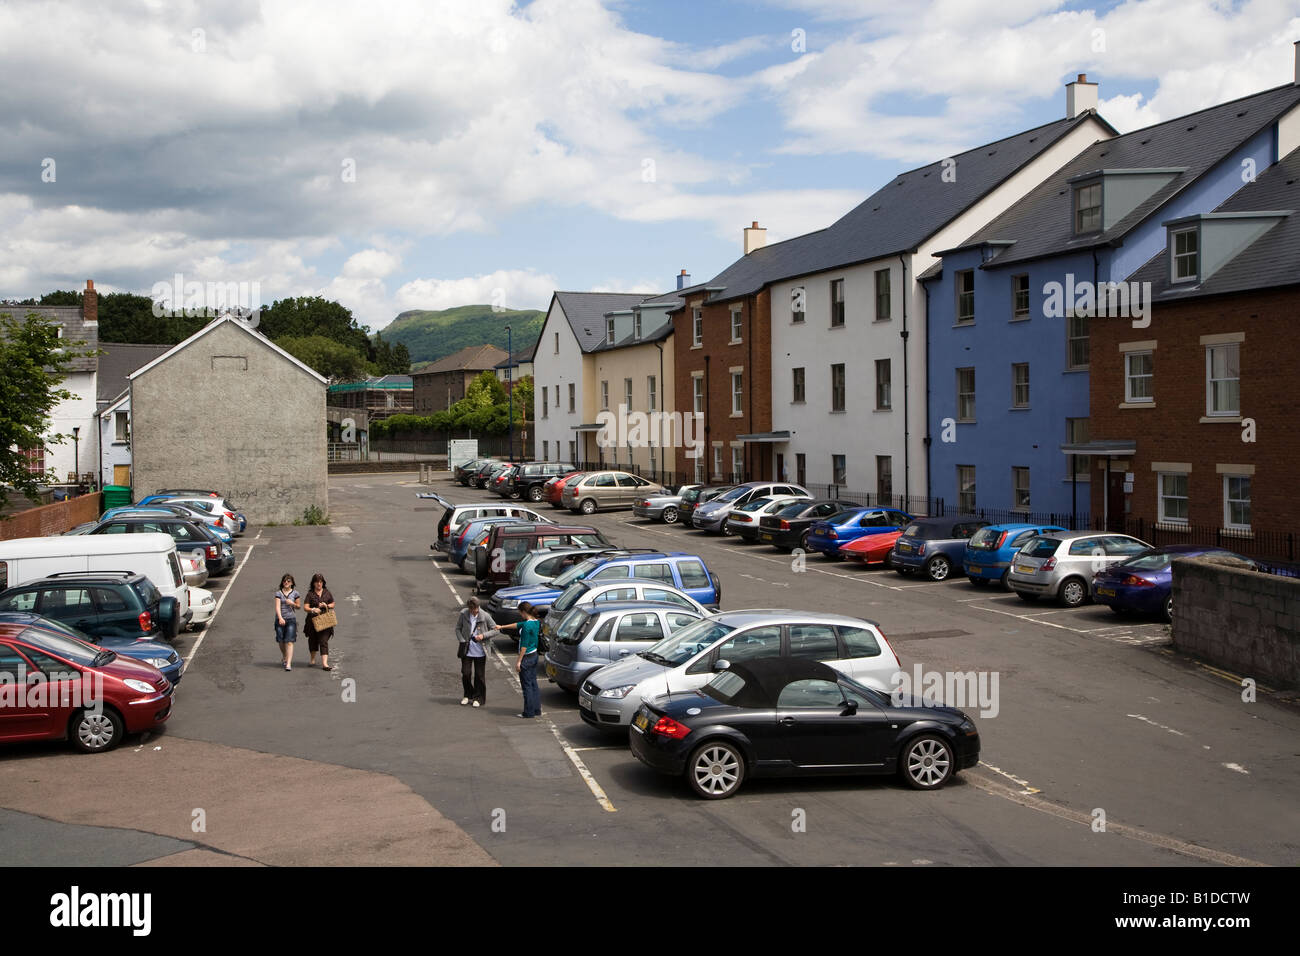 People in urban car park Abergavenny Wales UK - Stock Image